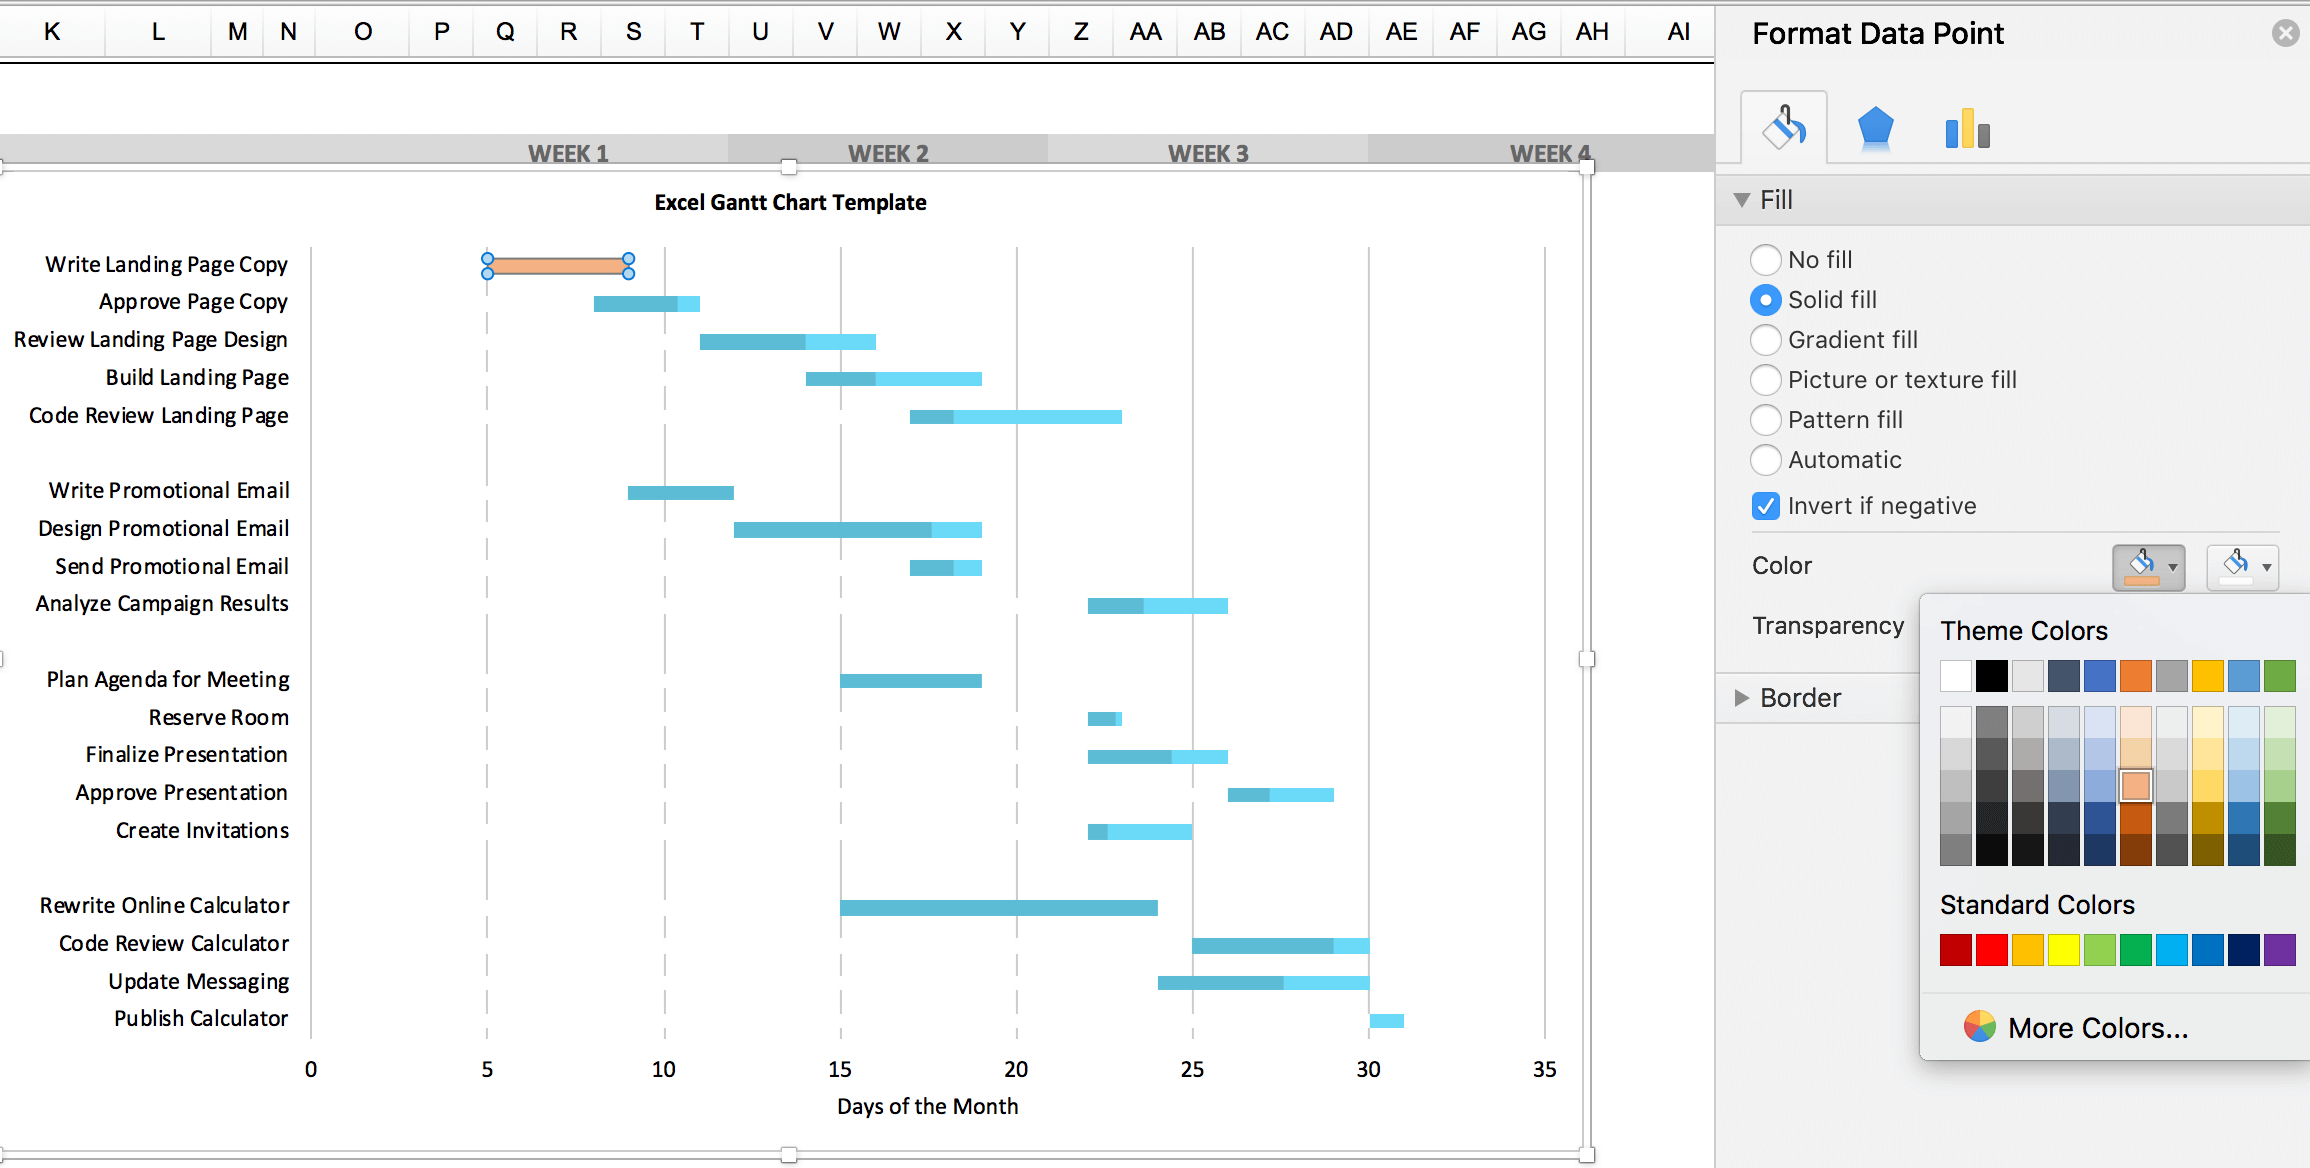 Free Gantt Chart Excel Template: Download Now | Teamgantt Intended For Gantt Chart Templates Excel